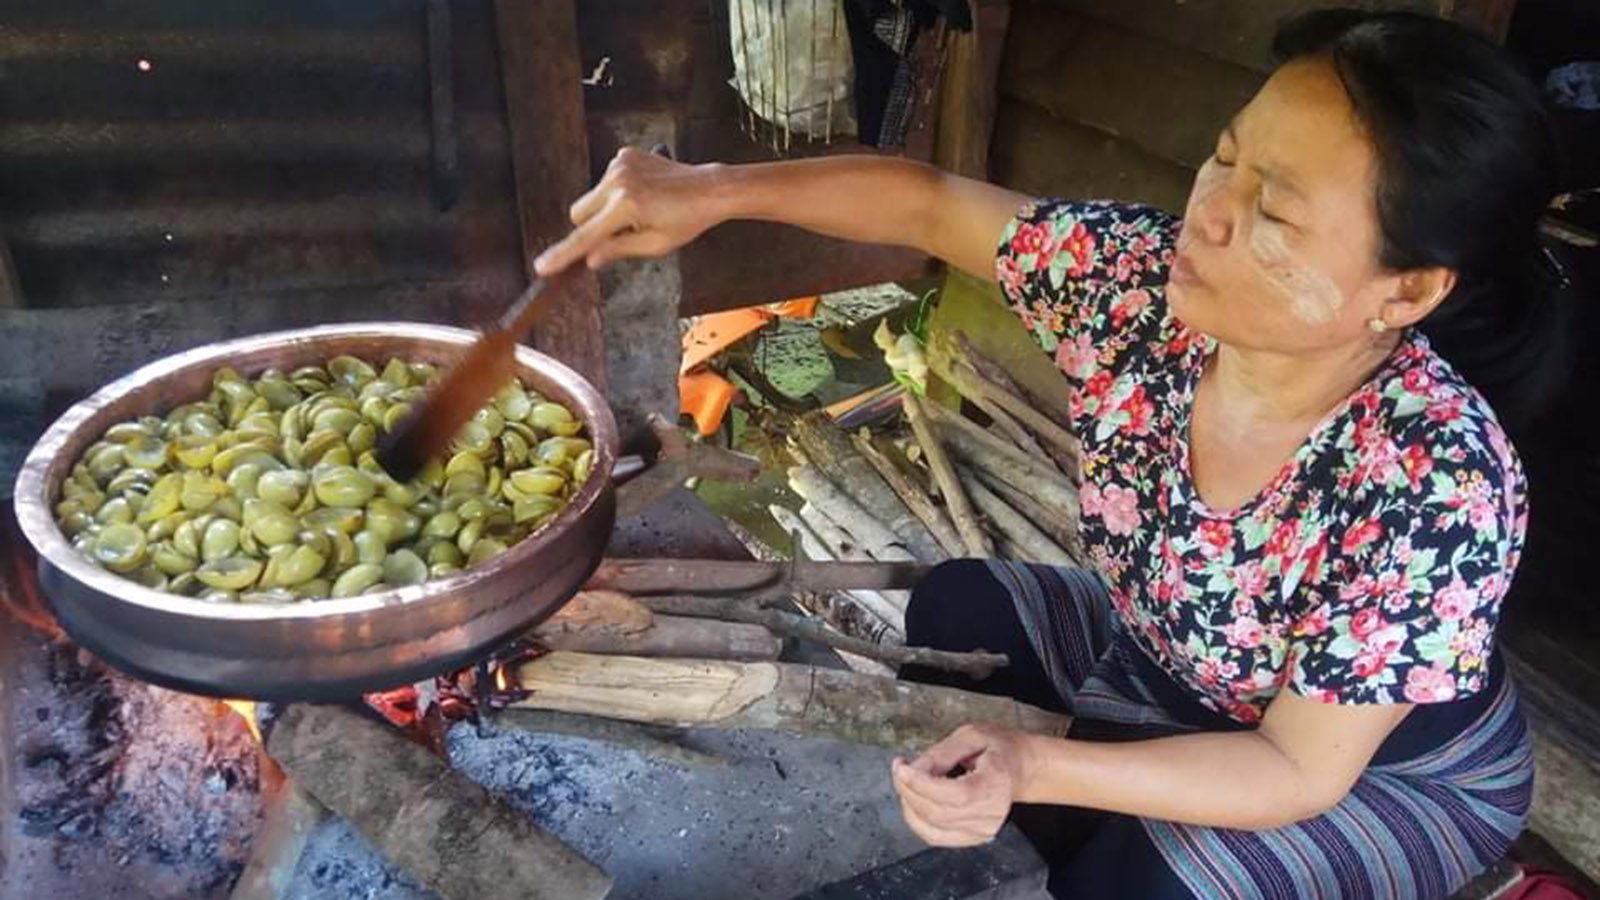 A woman cooks halved marian in the pan to make jam. Photo: Khon Winpa